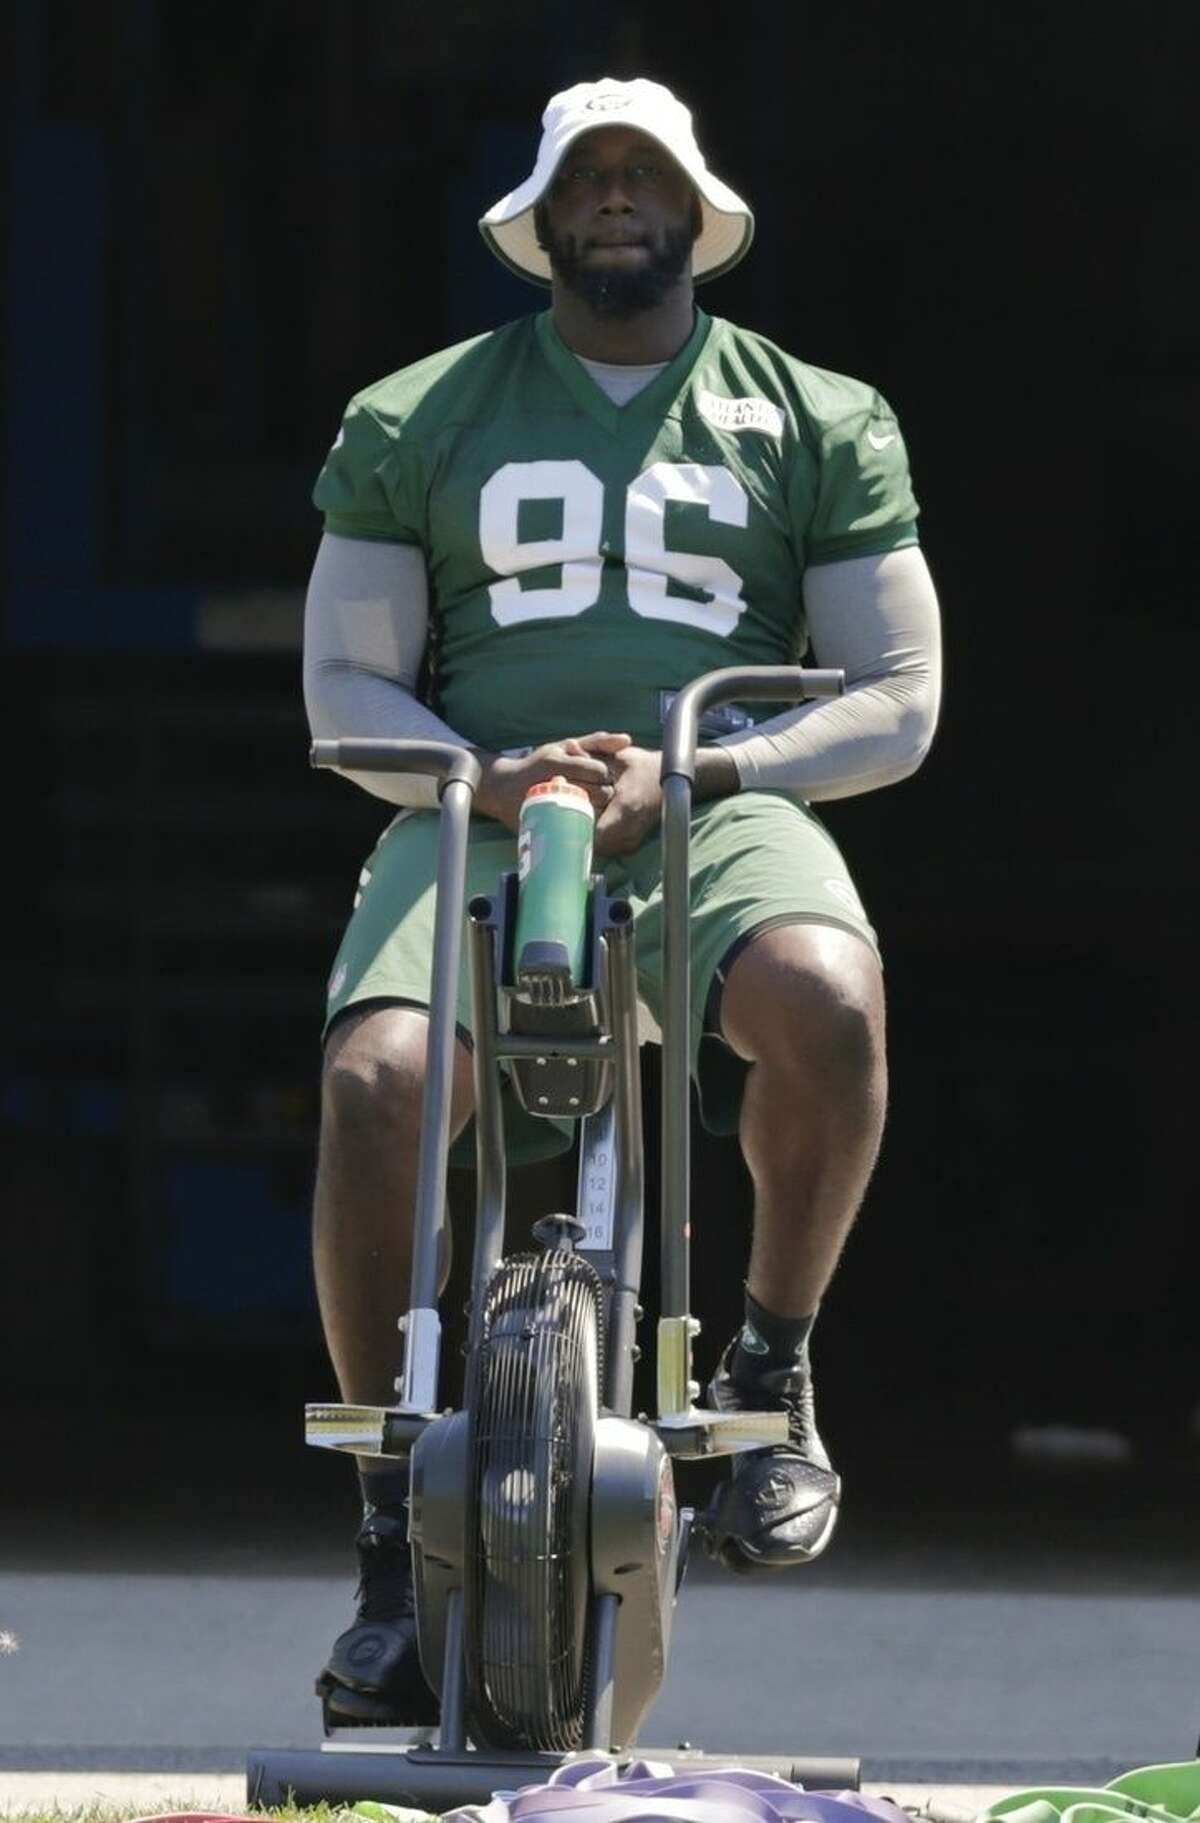 New York Jets' Muhammad Wilkerson rides a stationary bike during practice at NFL football training camp, Tuesday, Aug. 4, 2015, in Florham Park, N.J. (AP Photo/Frank Franklin II)